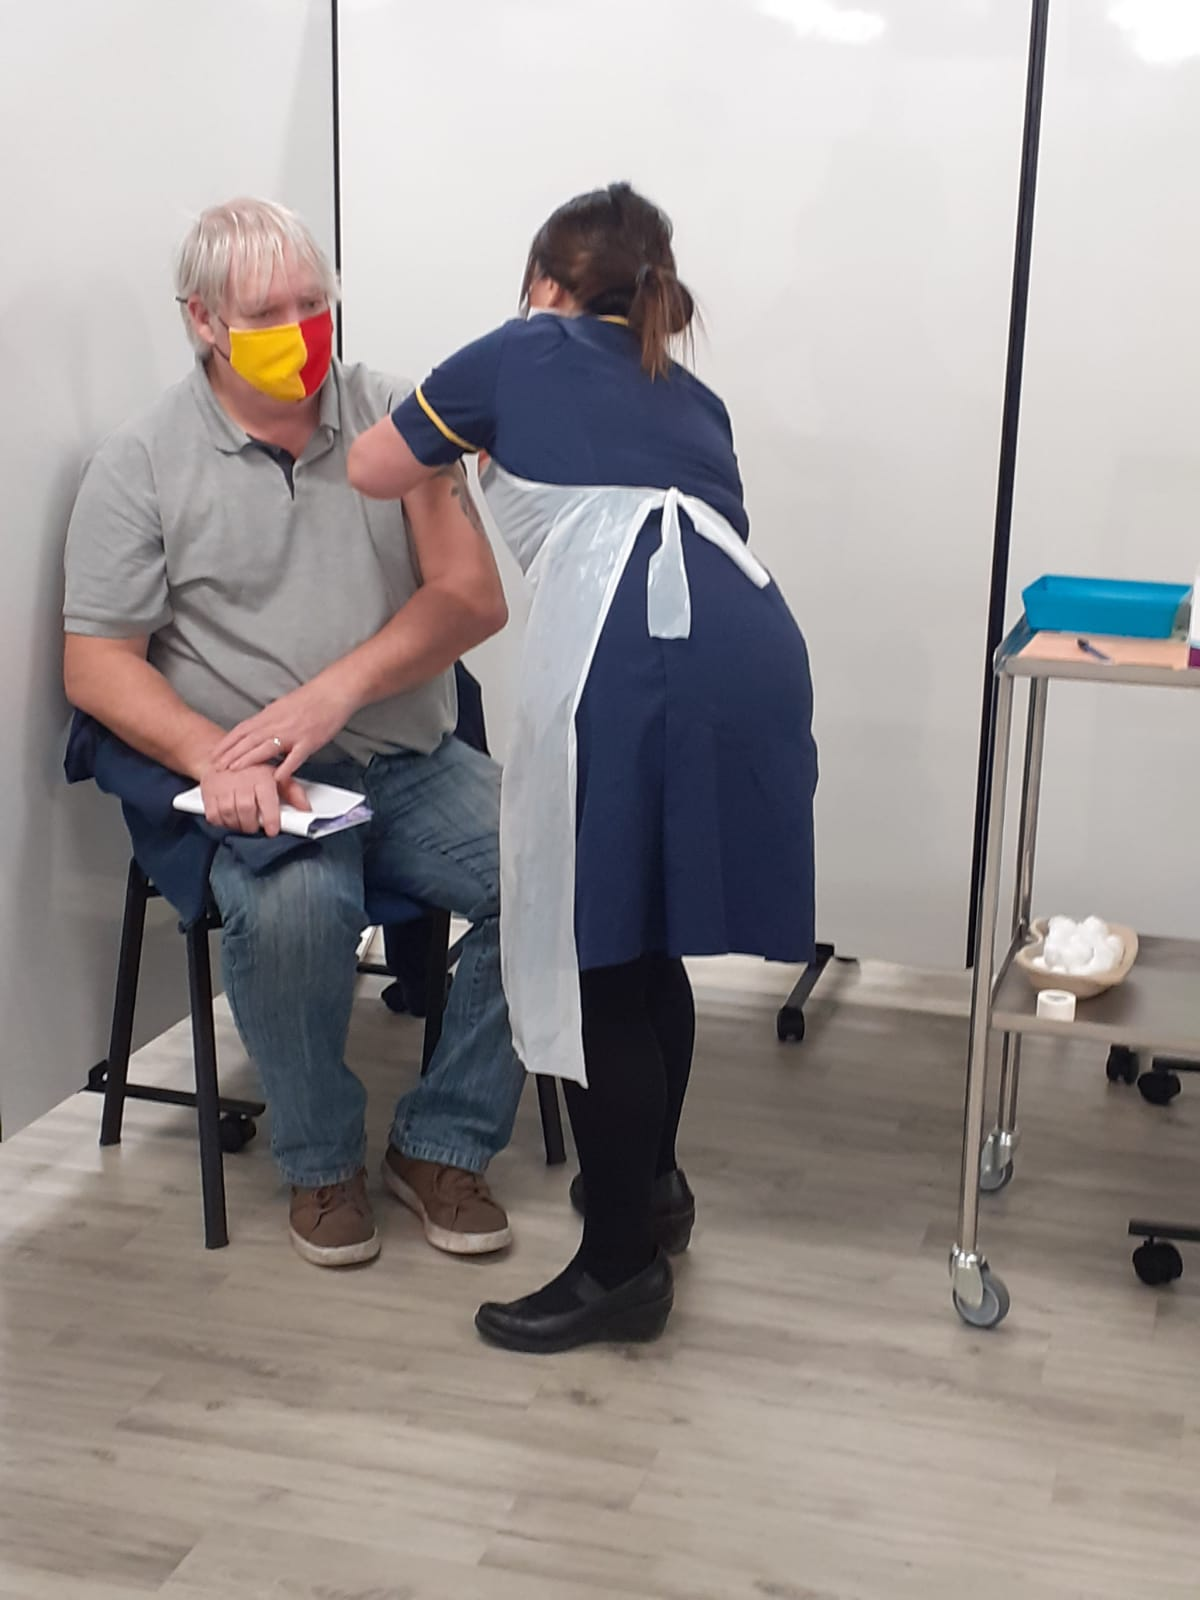 saddlers vaccination centre